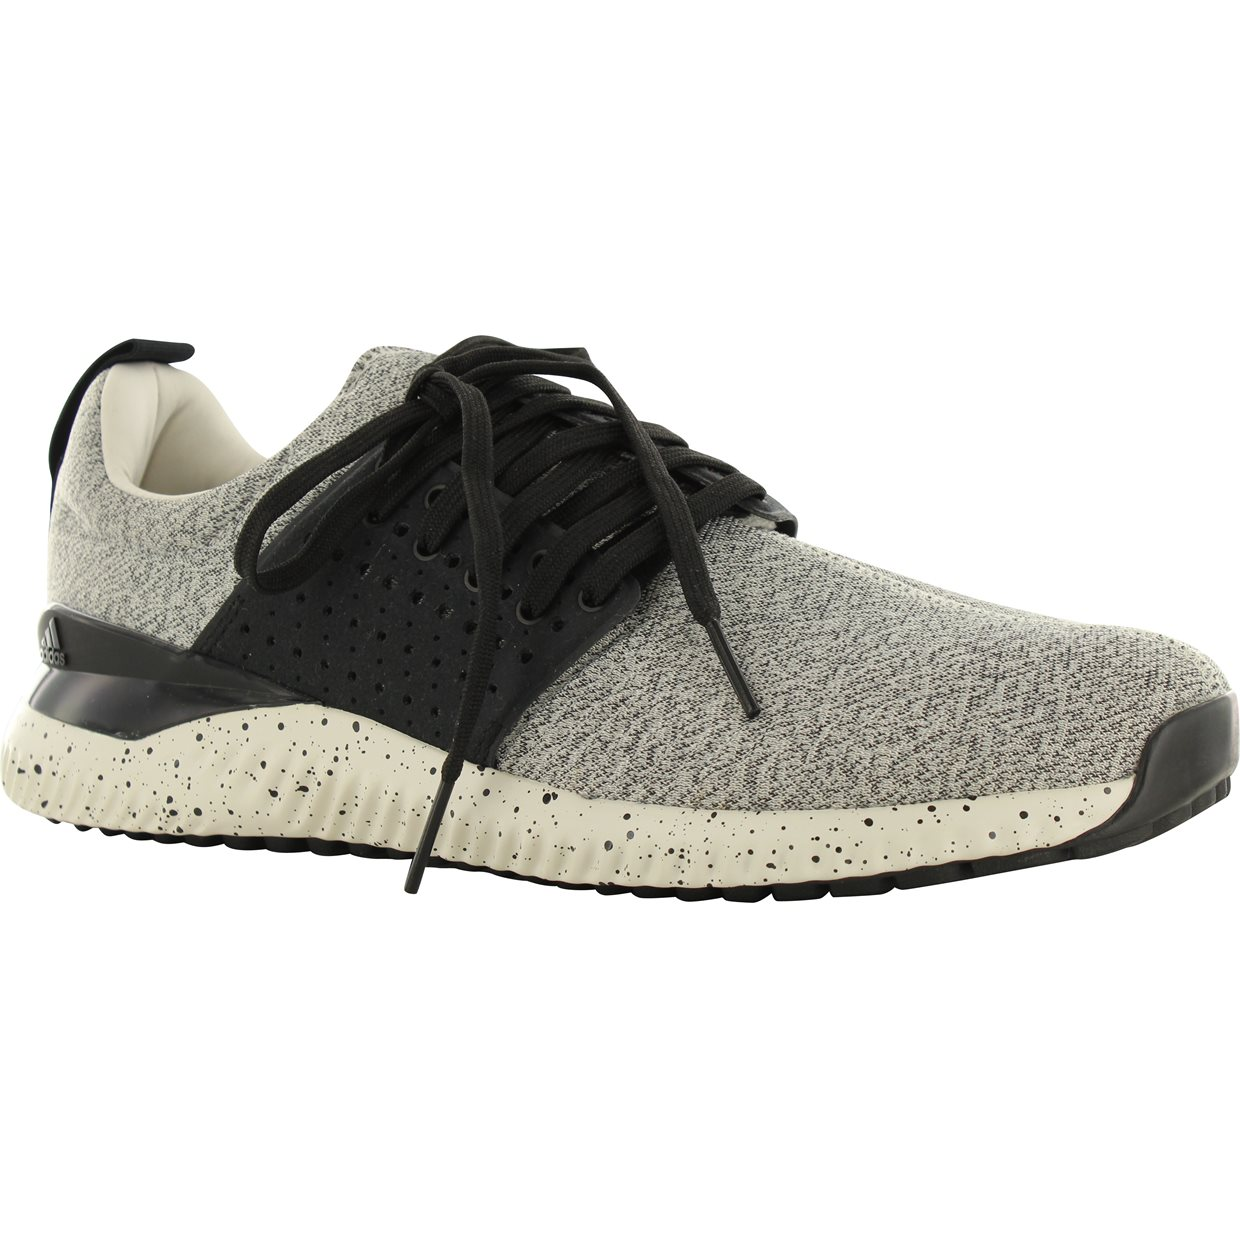 99731e5f7 Adidas adiCross Bounce 2019 Spikeless Shoes. Drag 360 Left or Right to  View. Alternate Product Image View 1 ...